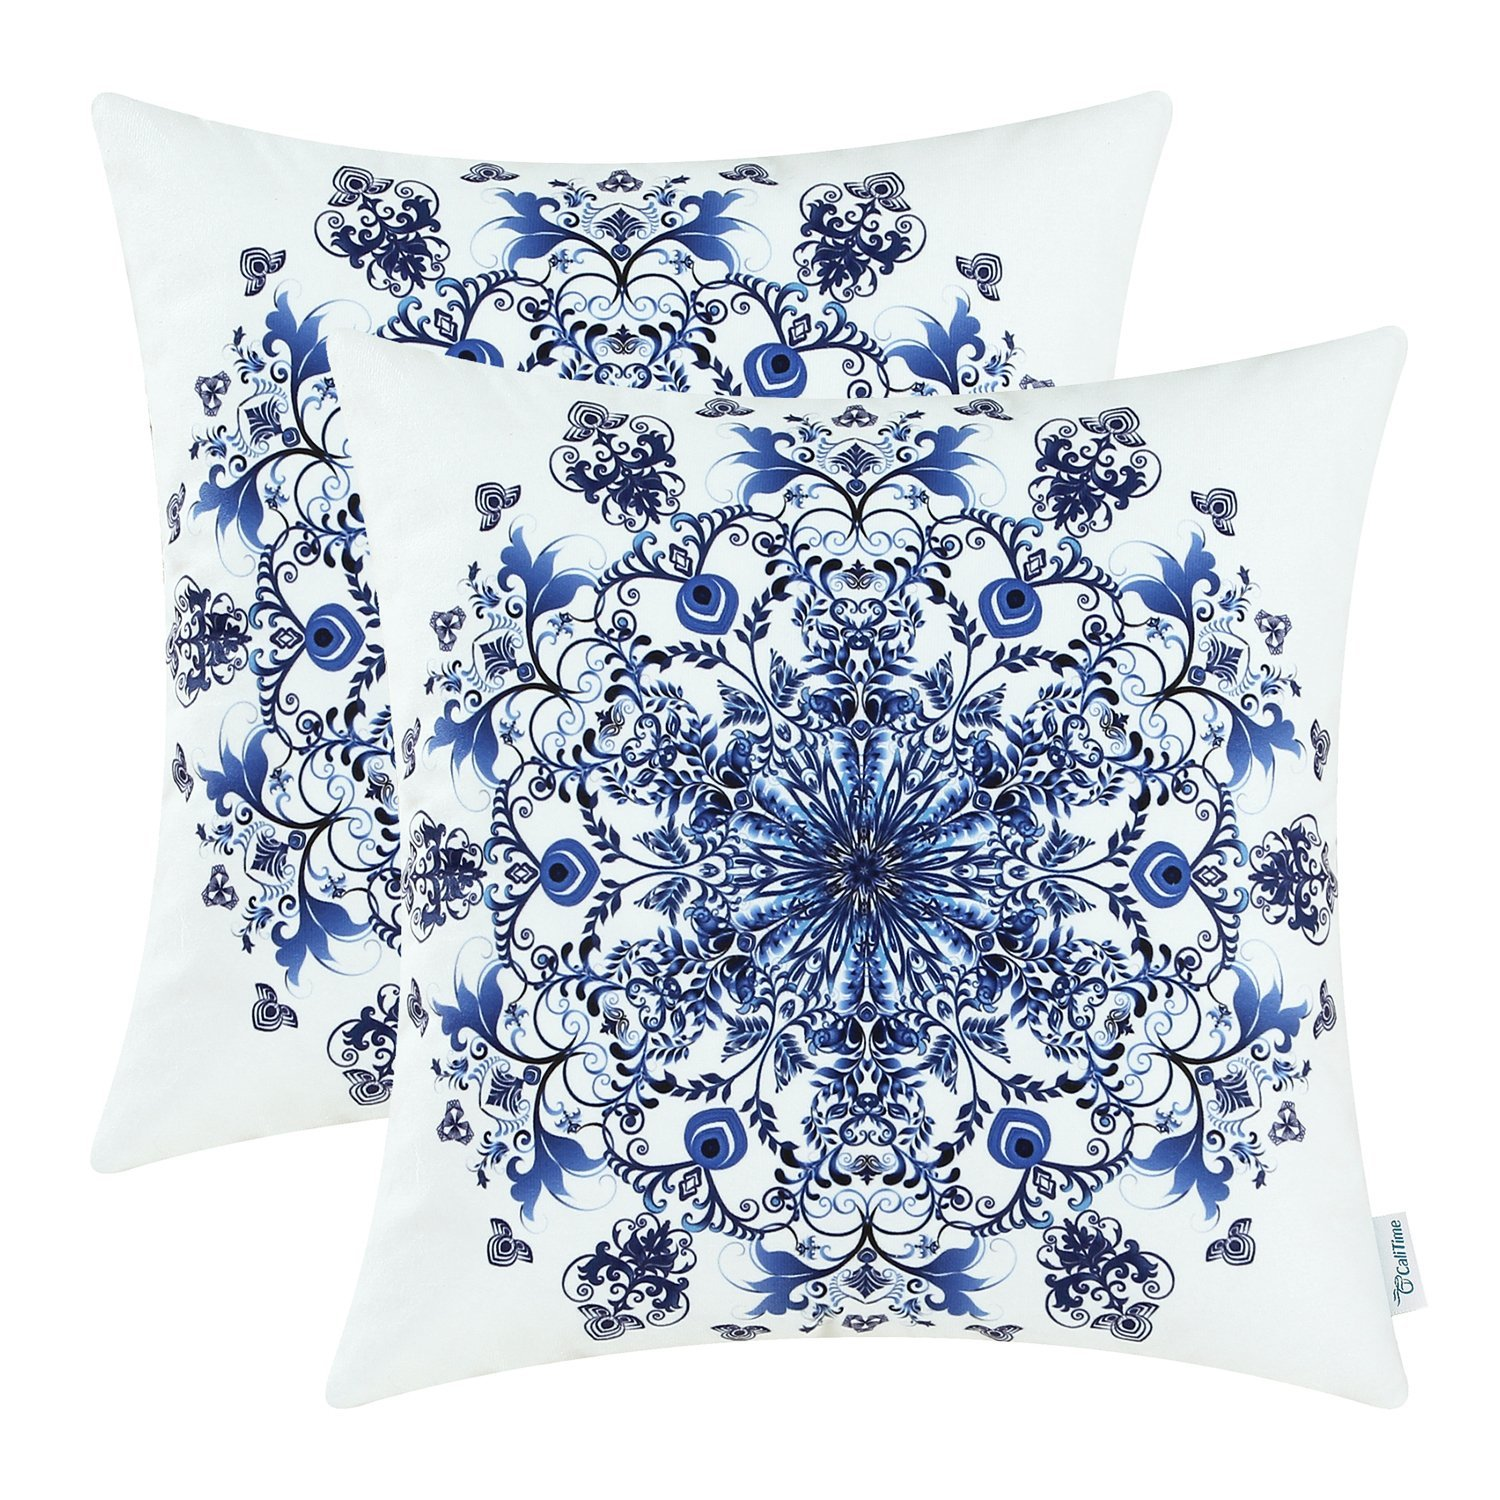 Blue and White Snowflake Pillow Cover